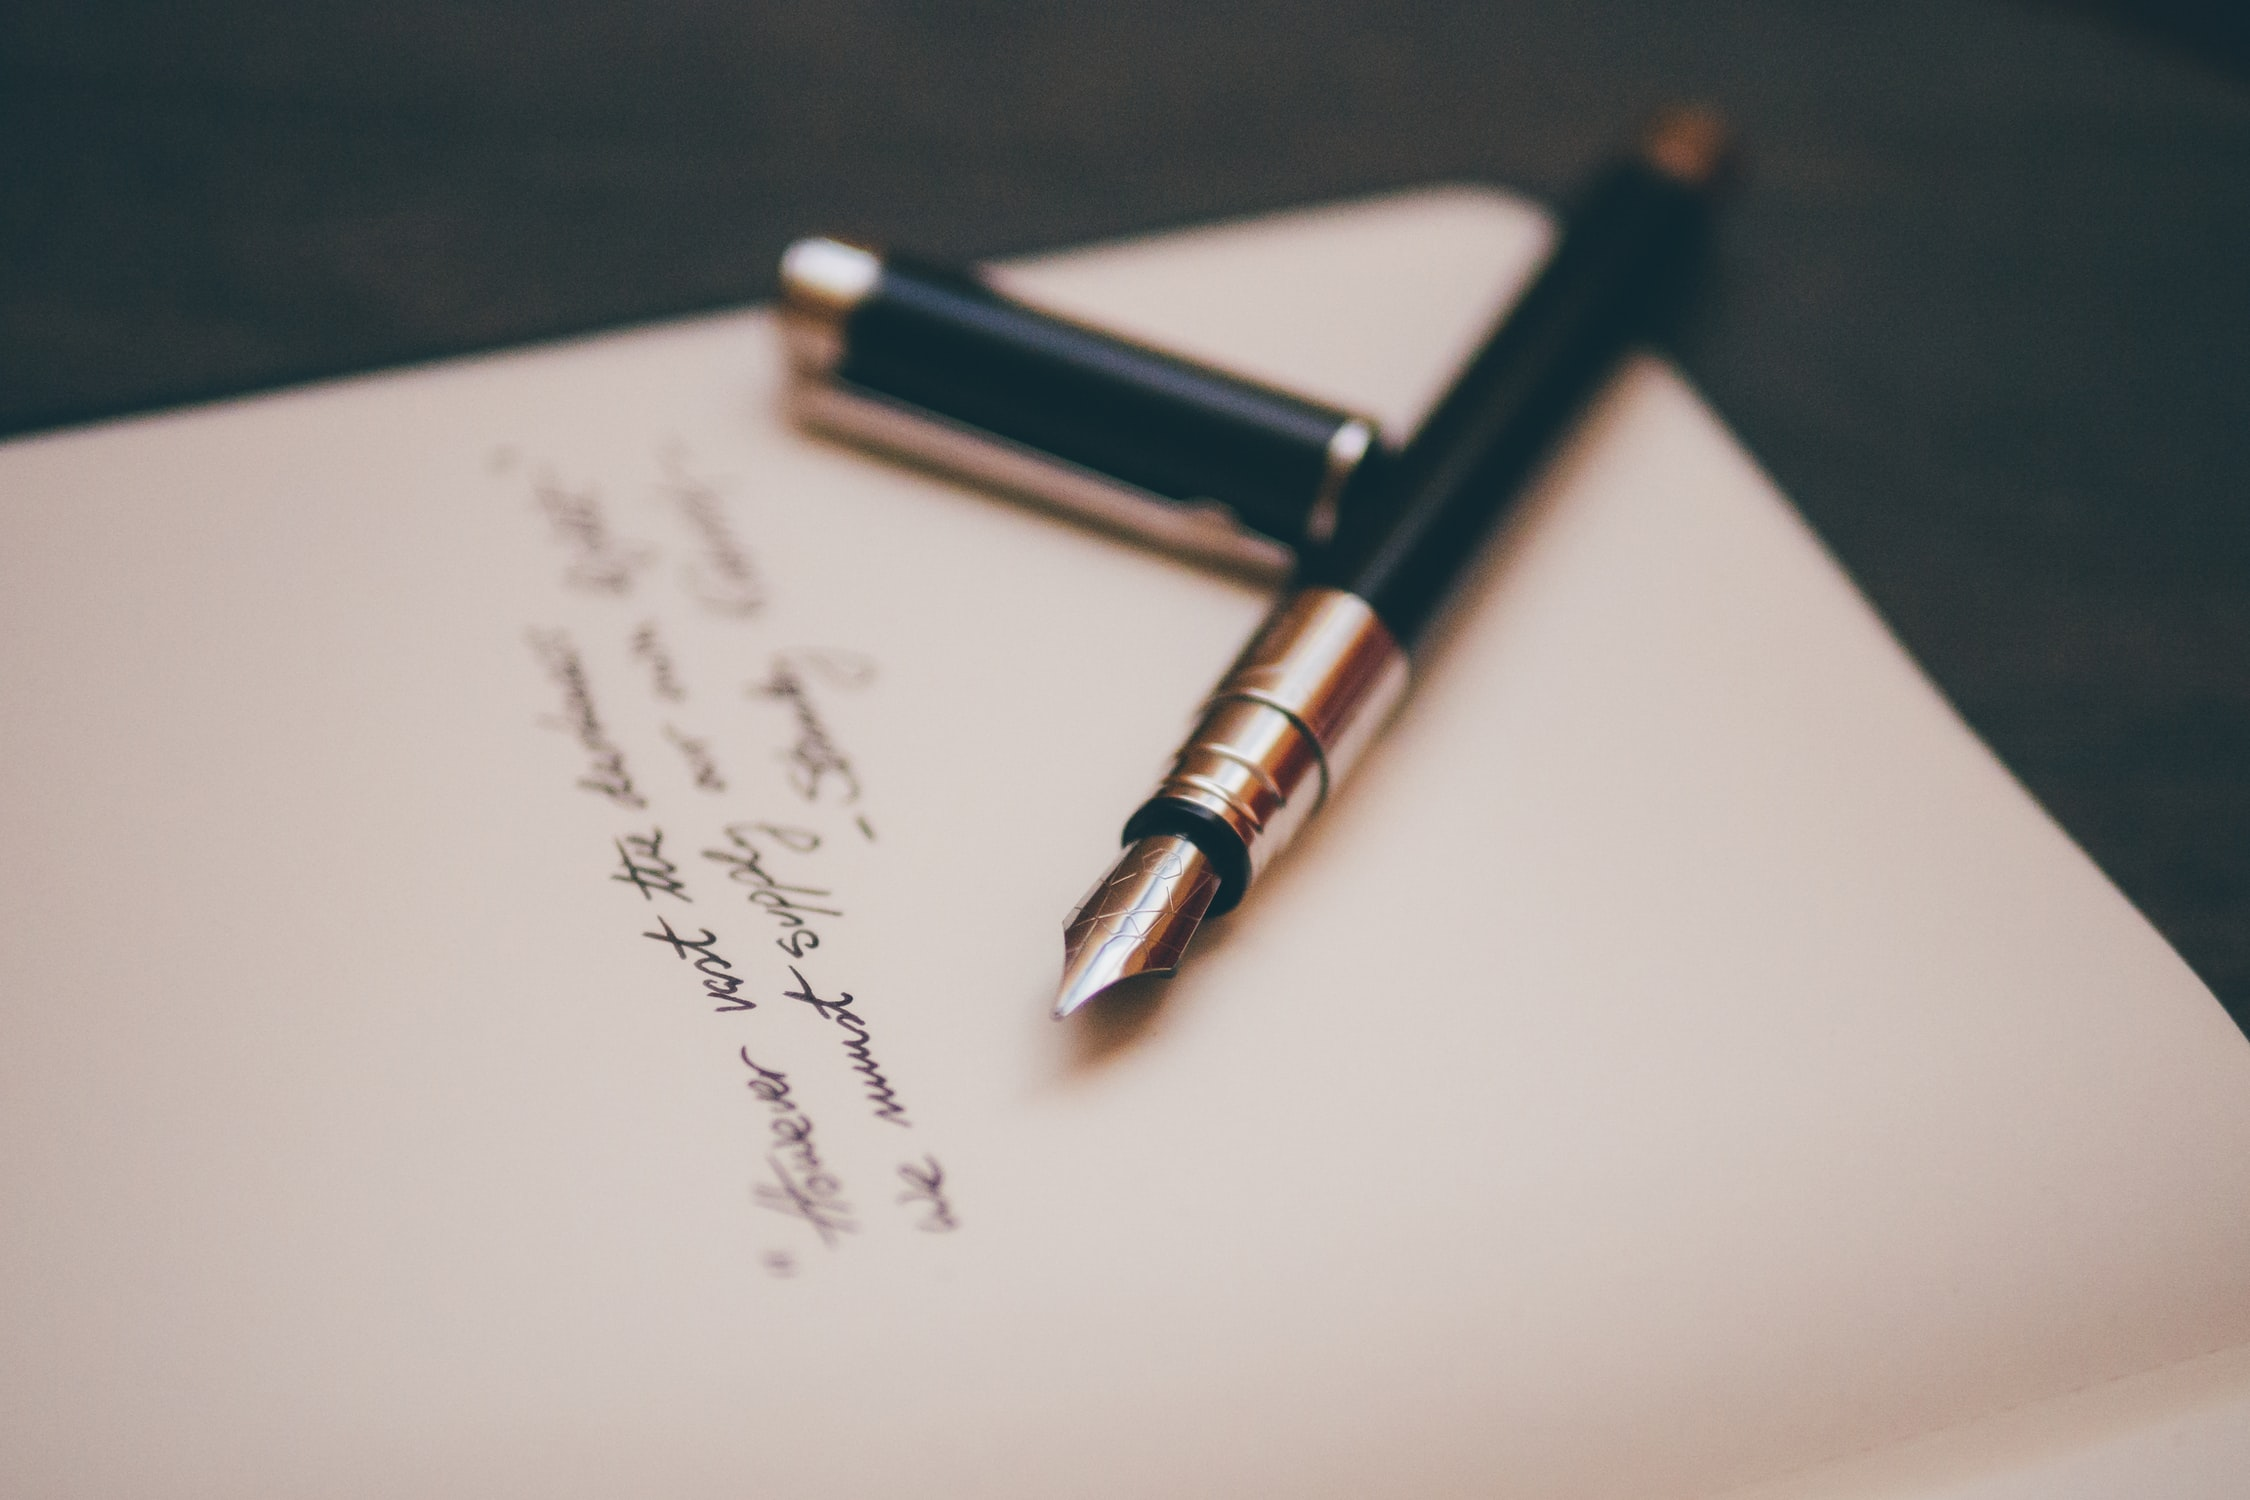 What You Need To Know About Specific Gifts Left In A Will